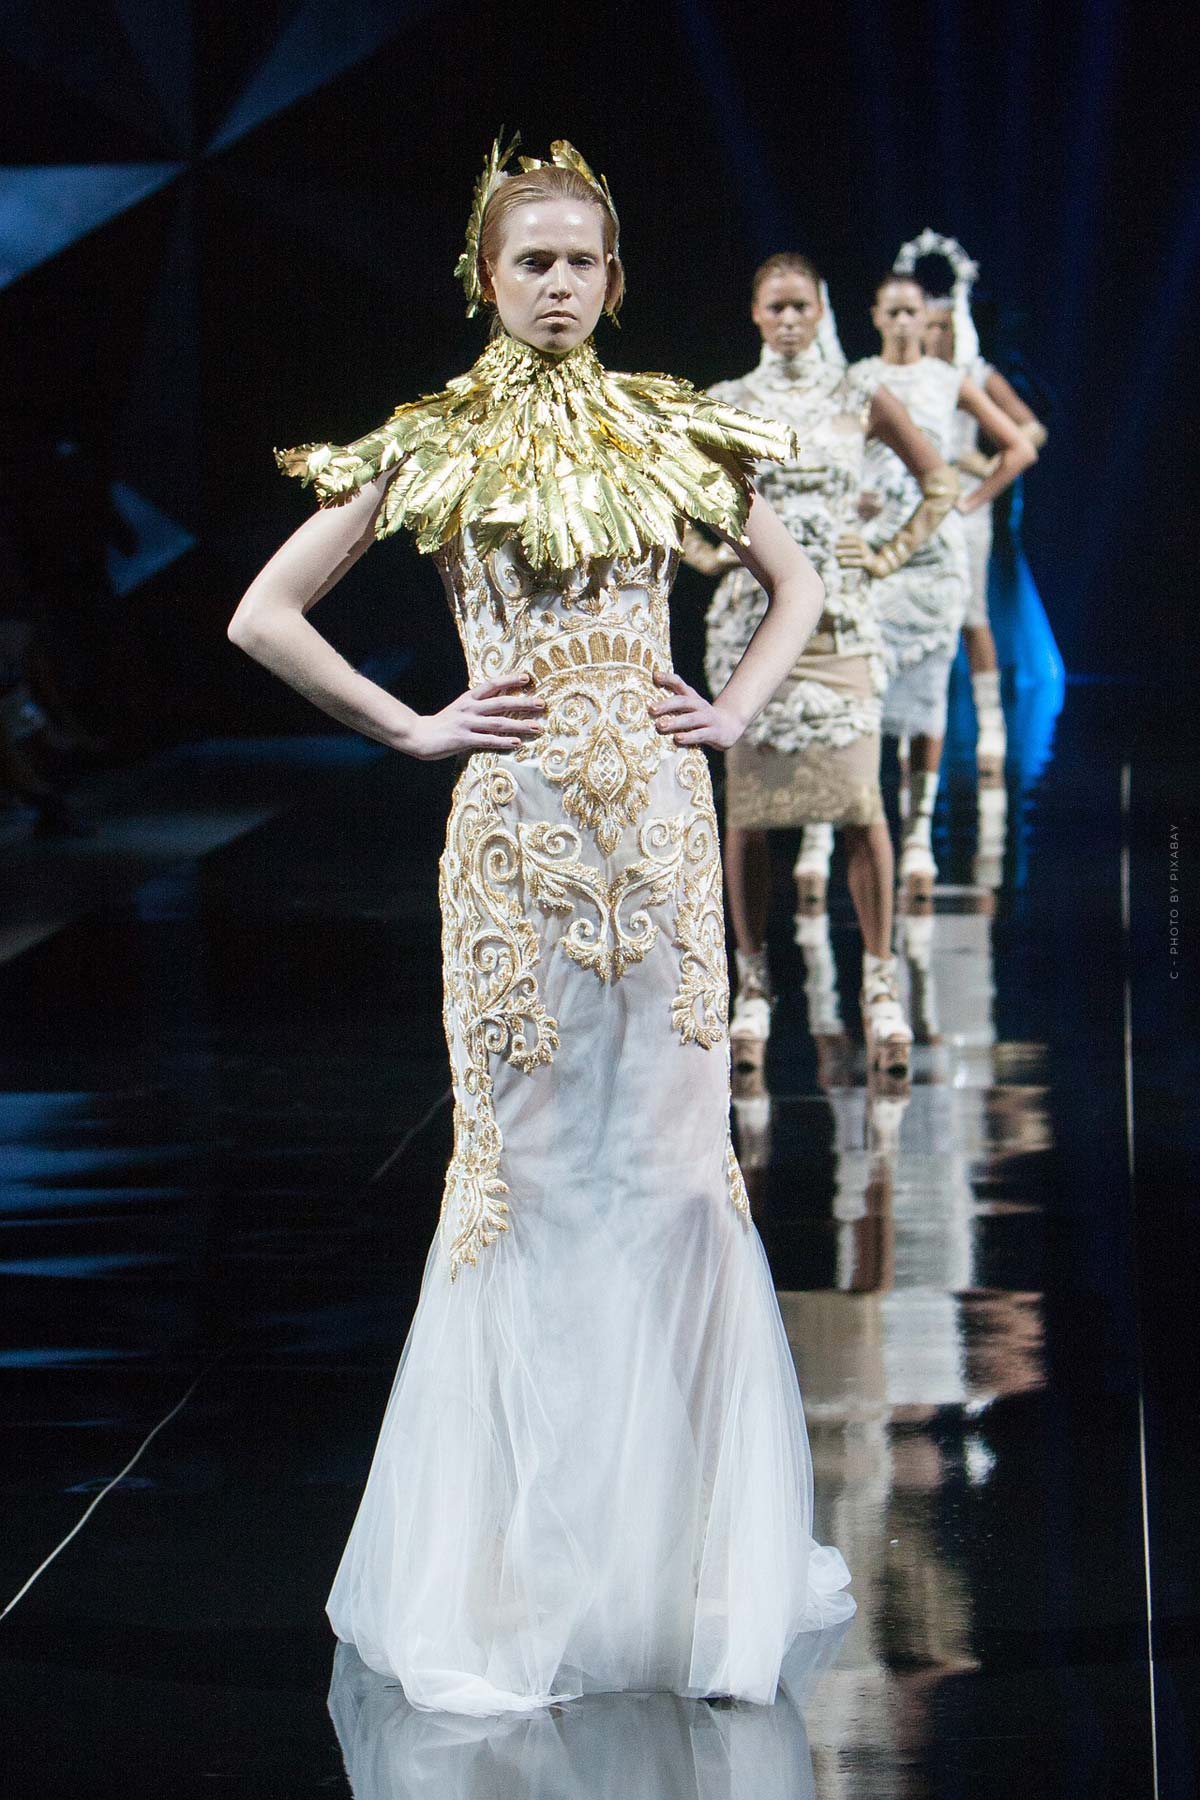 Alexander McQueen - Visionary, provocateur and exceptional talent